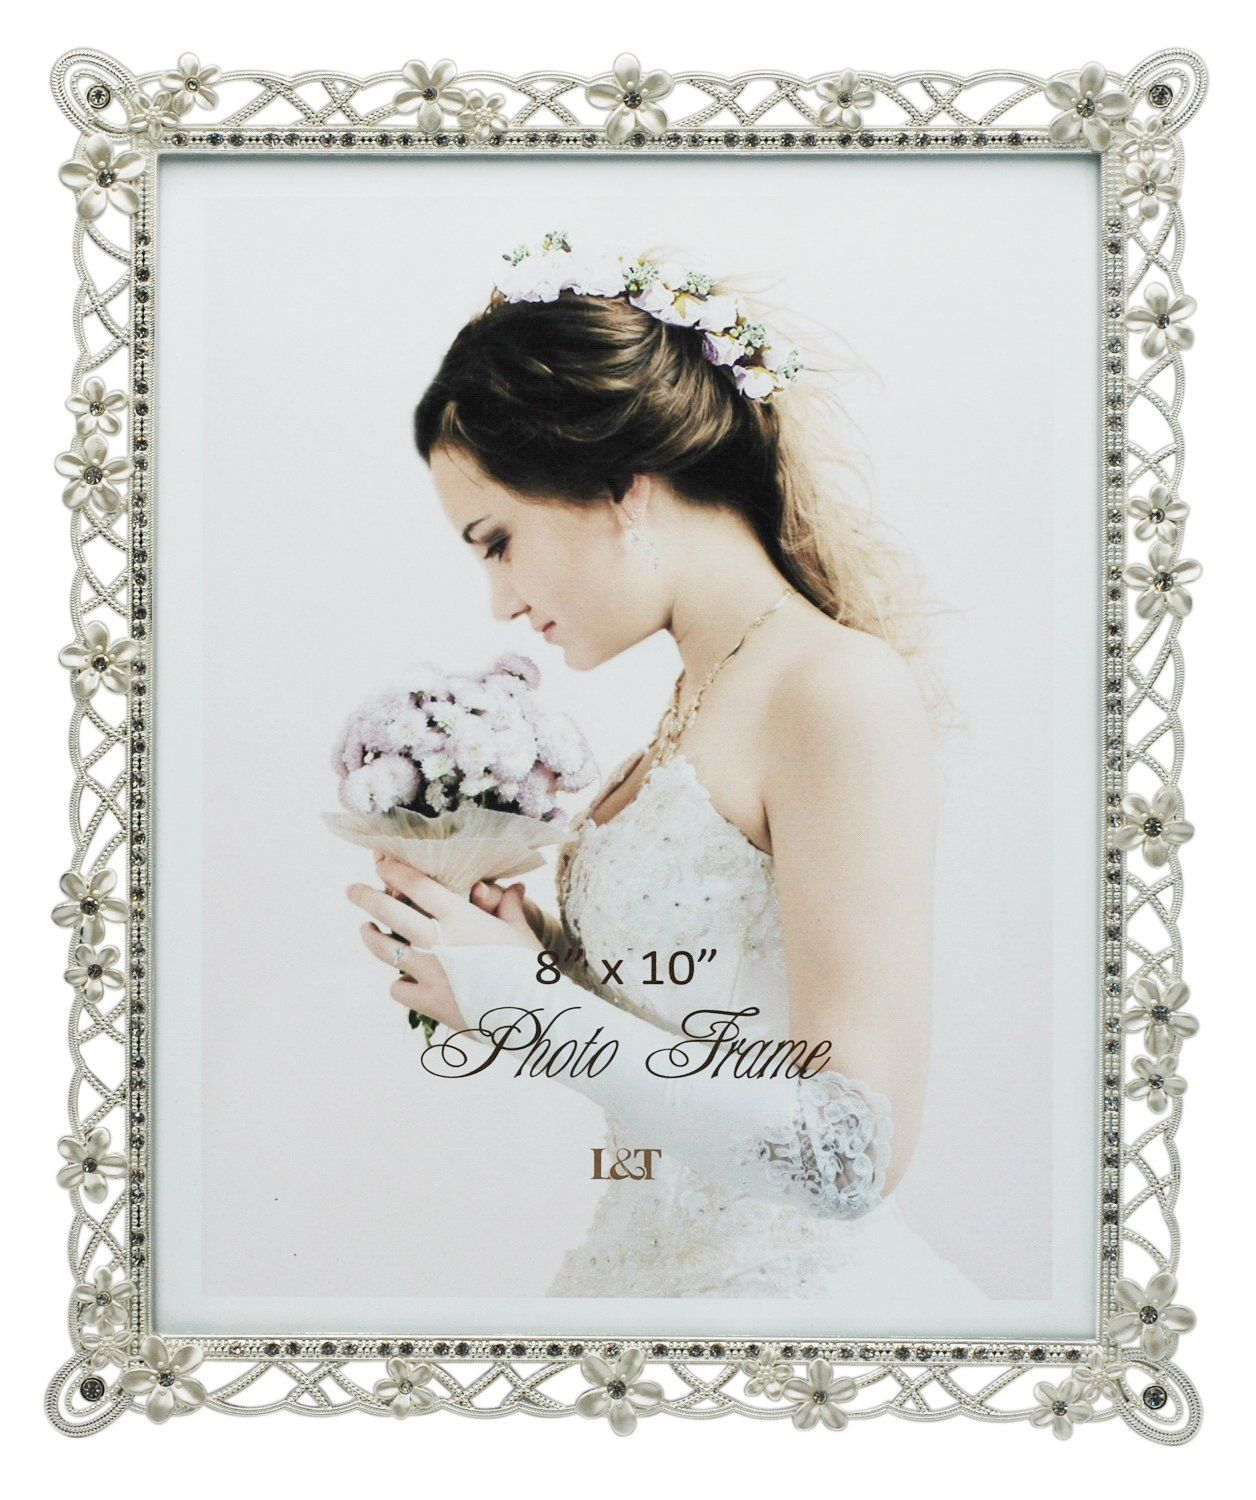 Landt Wedding Picture Frame Silver Plated Metal With Pearly White Flowers And Crystals 8 X10 Inch Learn More By Wedding Picture Frames Picture Frames Frame